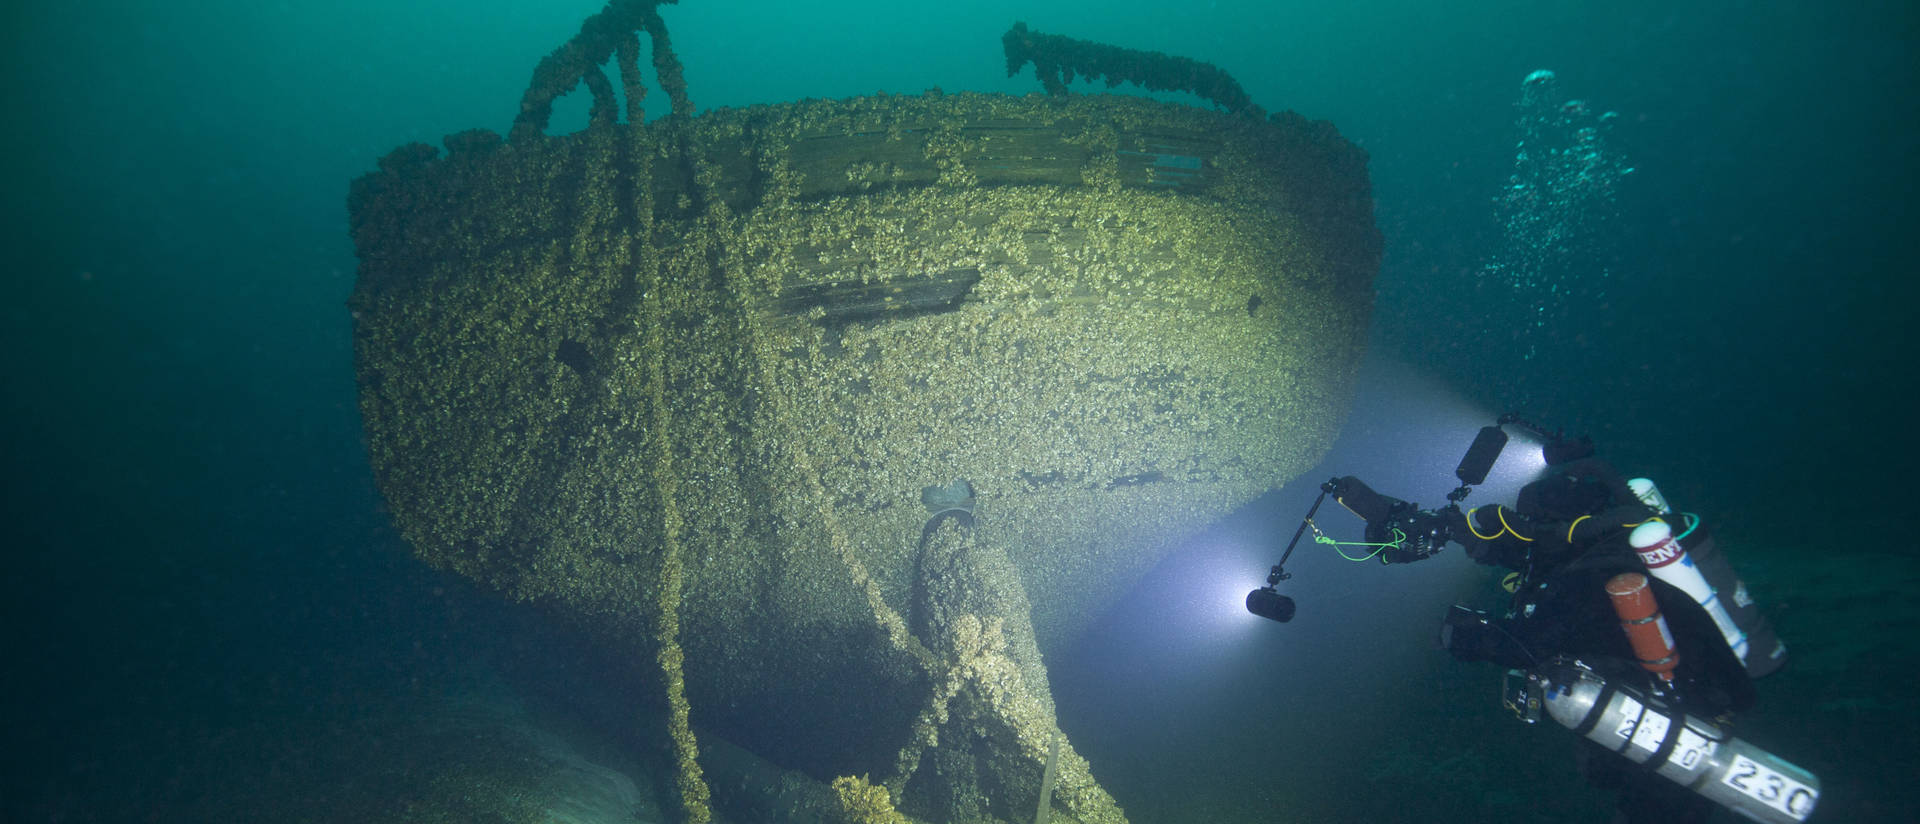 In this Aug. 24, 2019, photo provided by John Janzen, diver John Scoles maneuvers around the wreckage of the schooners Peshtigo and St. Andrews, lost in 1878 near Beaver Island in northern Lake Michigan. (Photo credit: John Janzen via AP)